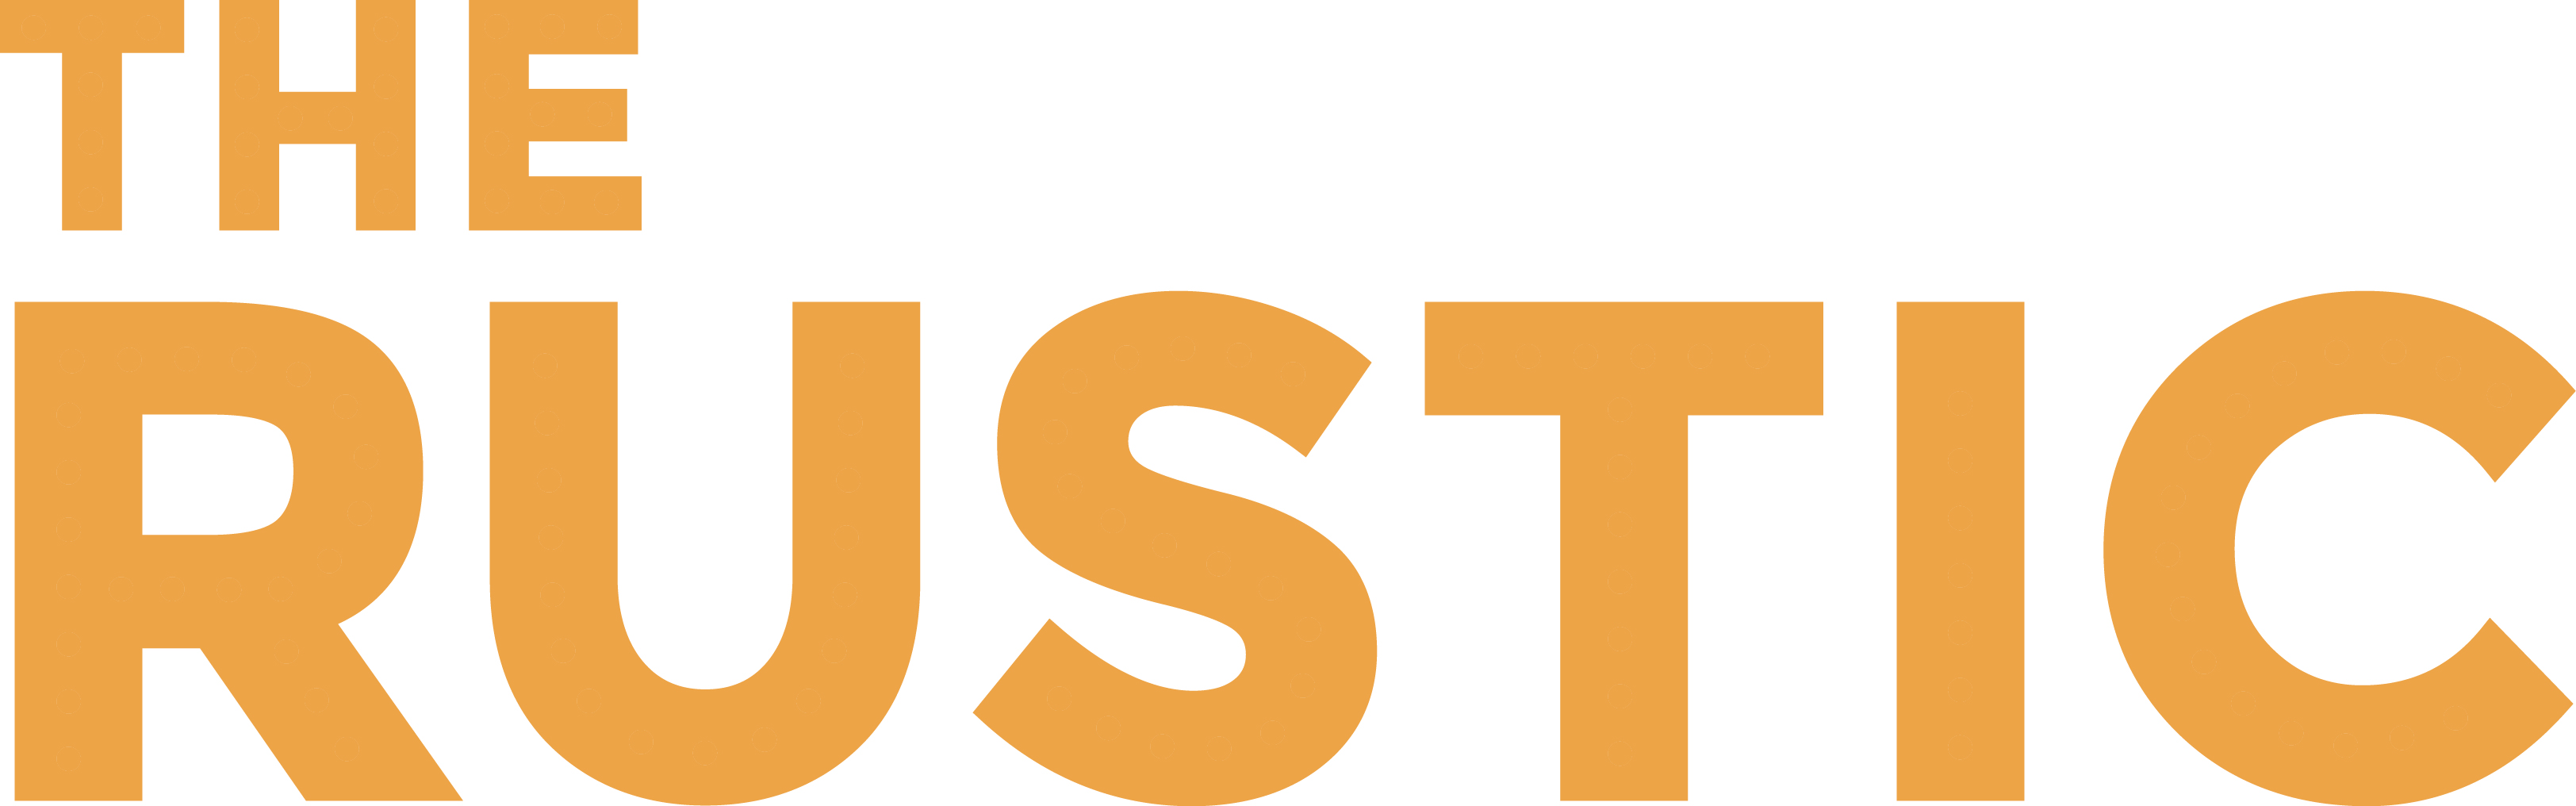 The Rustic logo